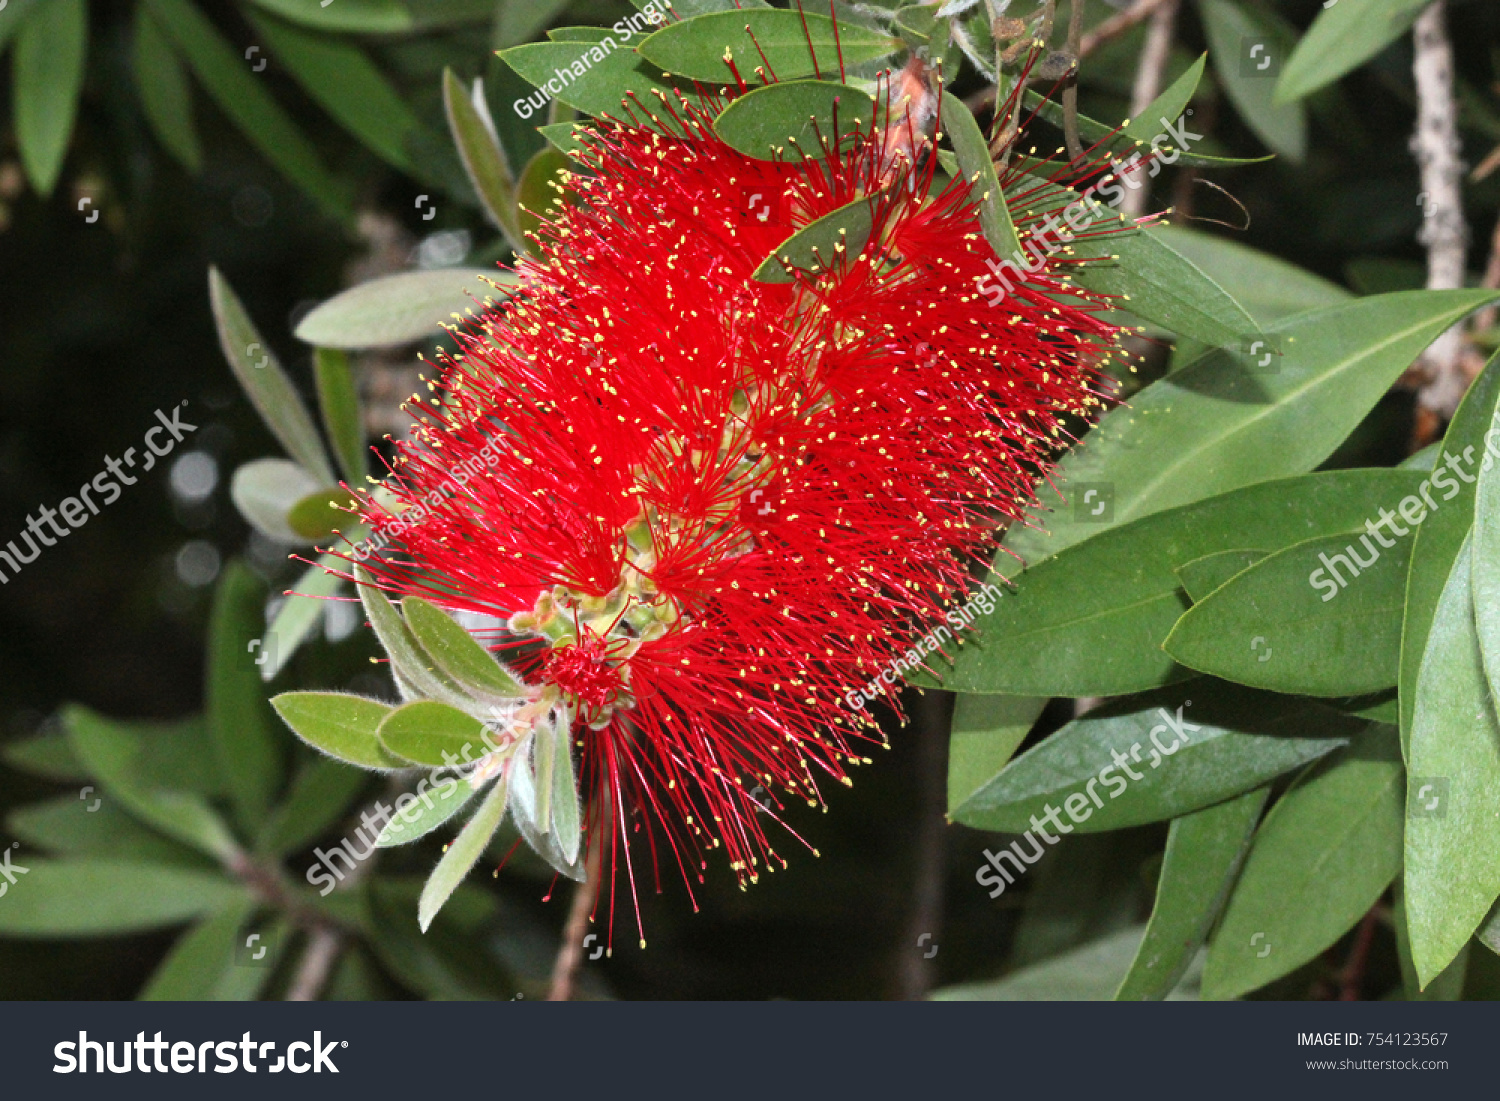 Goldtipped bottlebrush callistemon polandii shrub small stock photo gold tipped bottlebrush callistemon polandii shrub or small tree with elliptic leaves with mightylinksfo